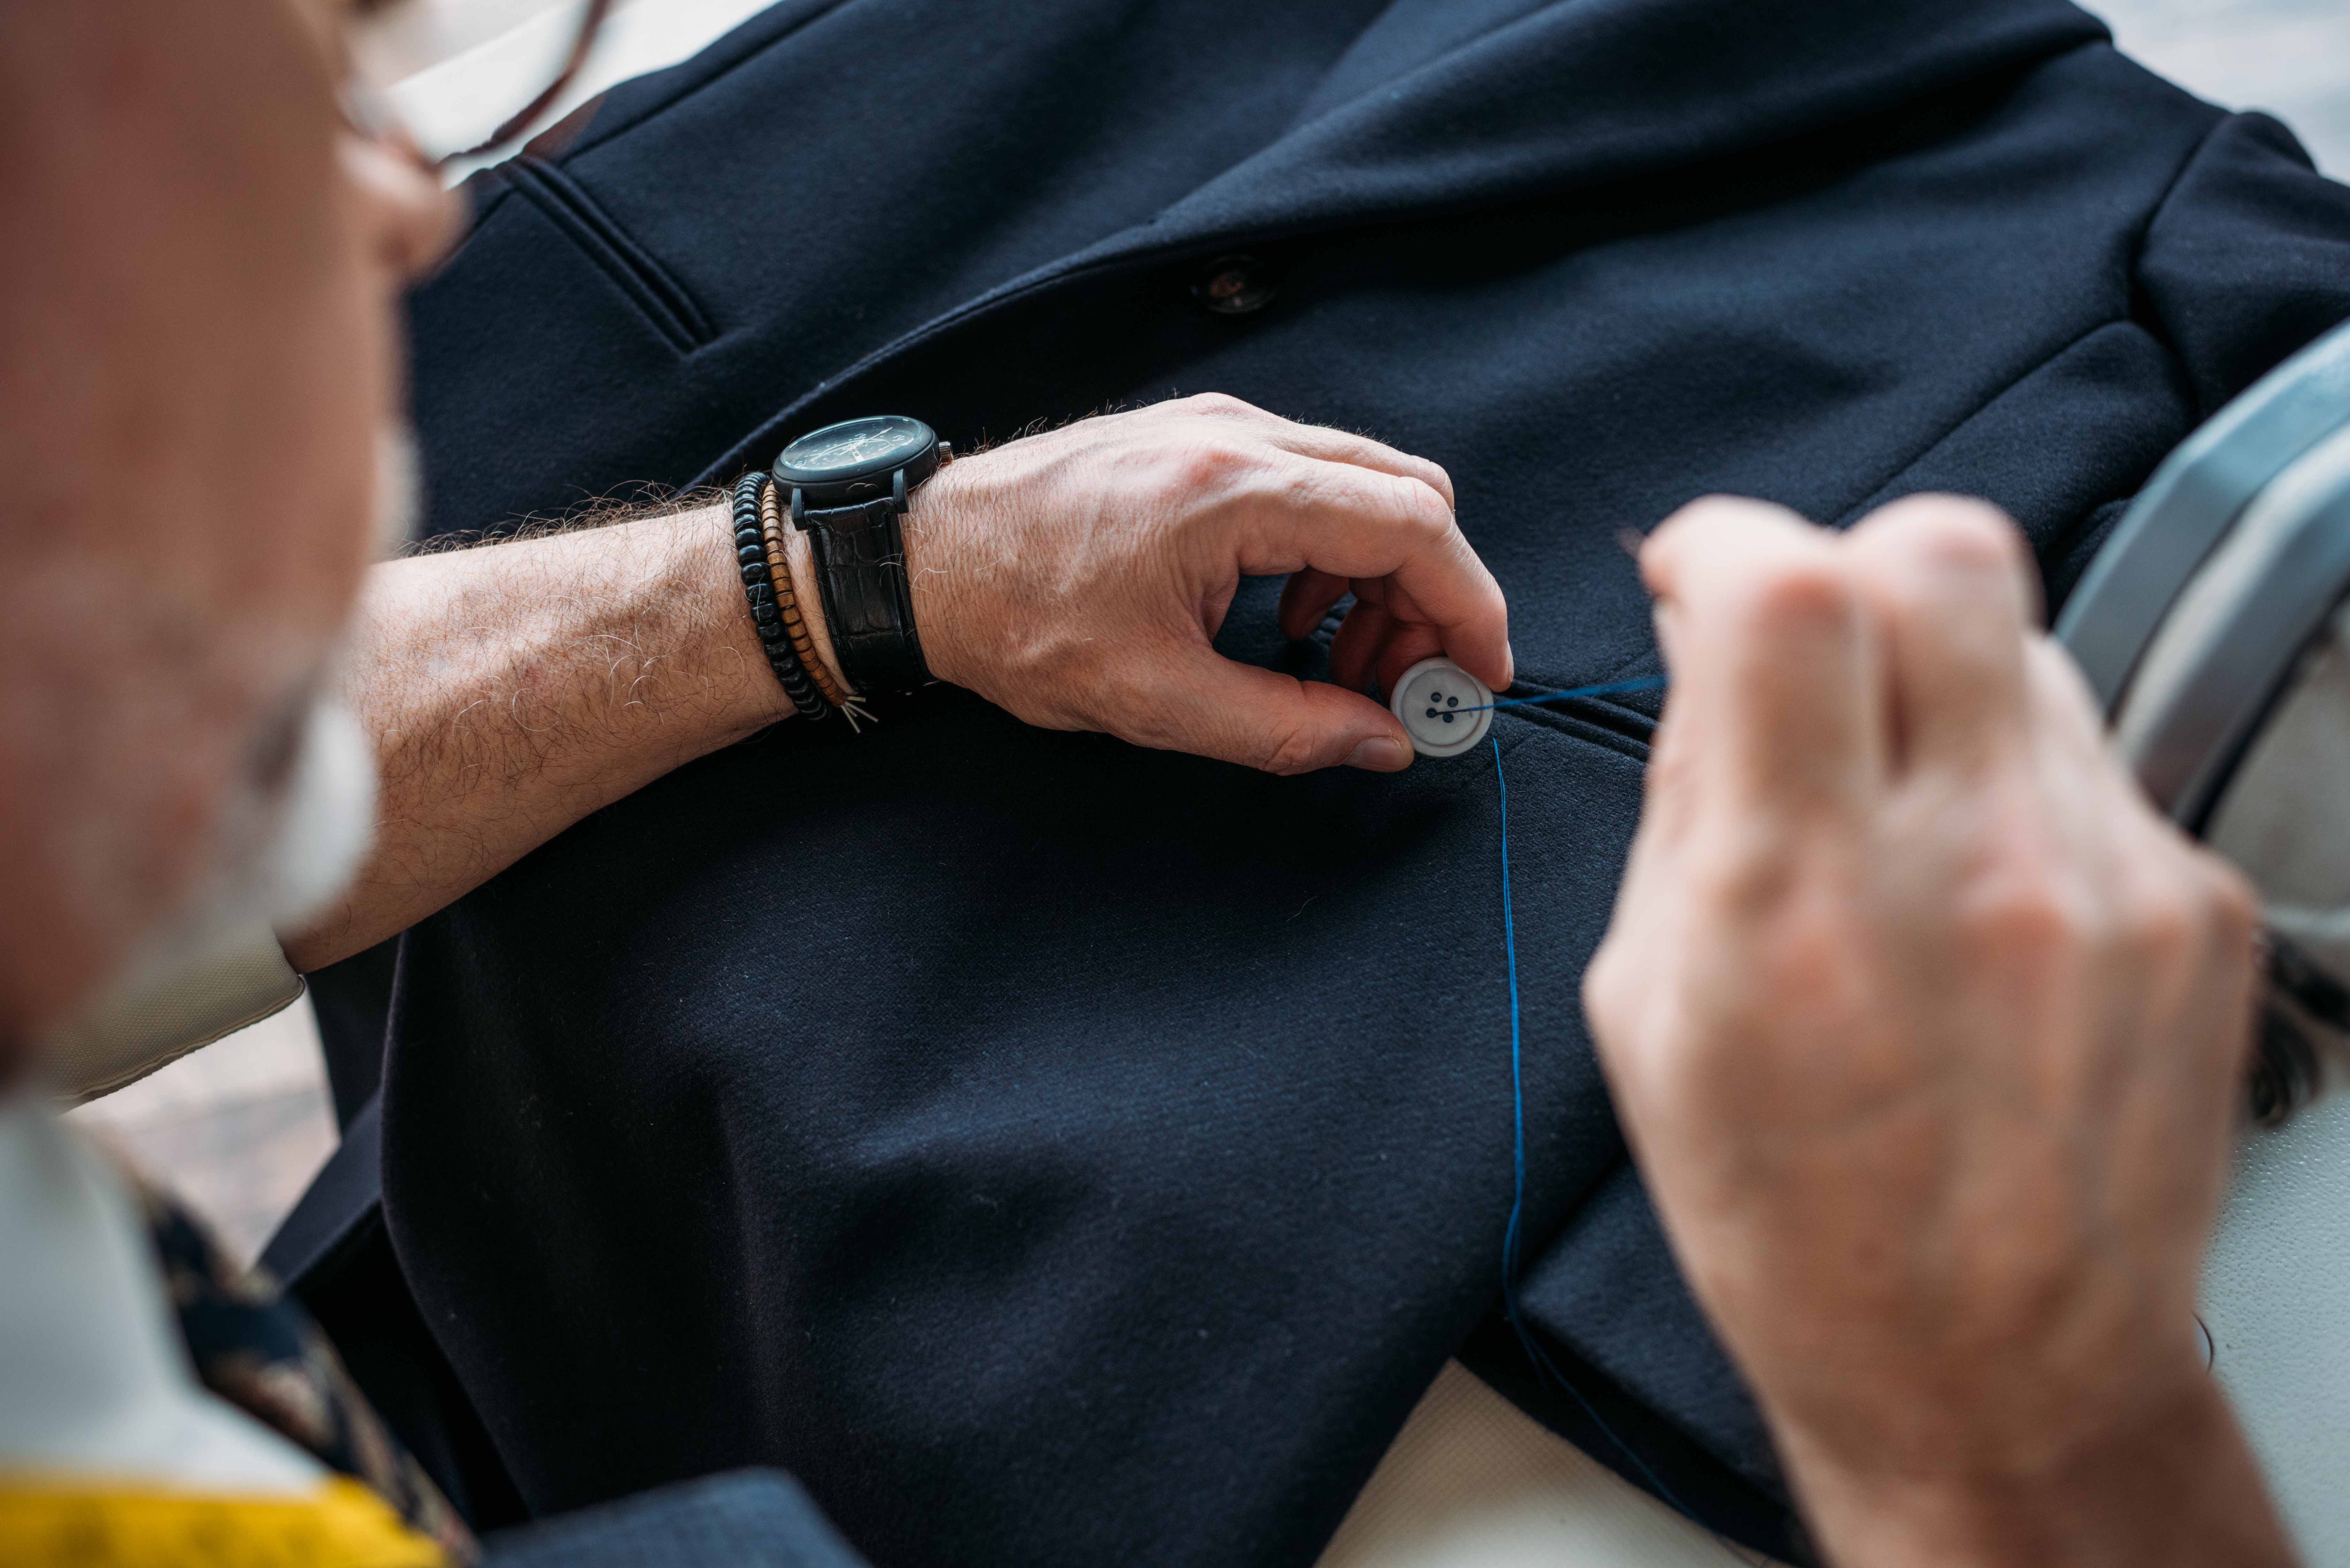 cropped-image-of-tailor-sewing-button-to-jacket-at-F3N23FE